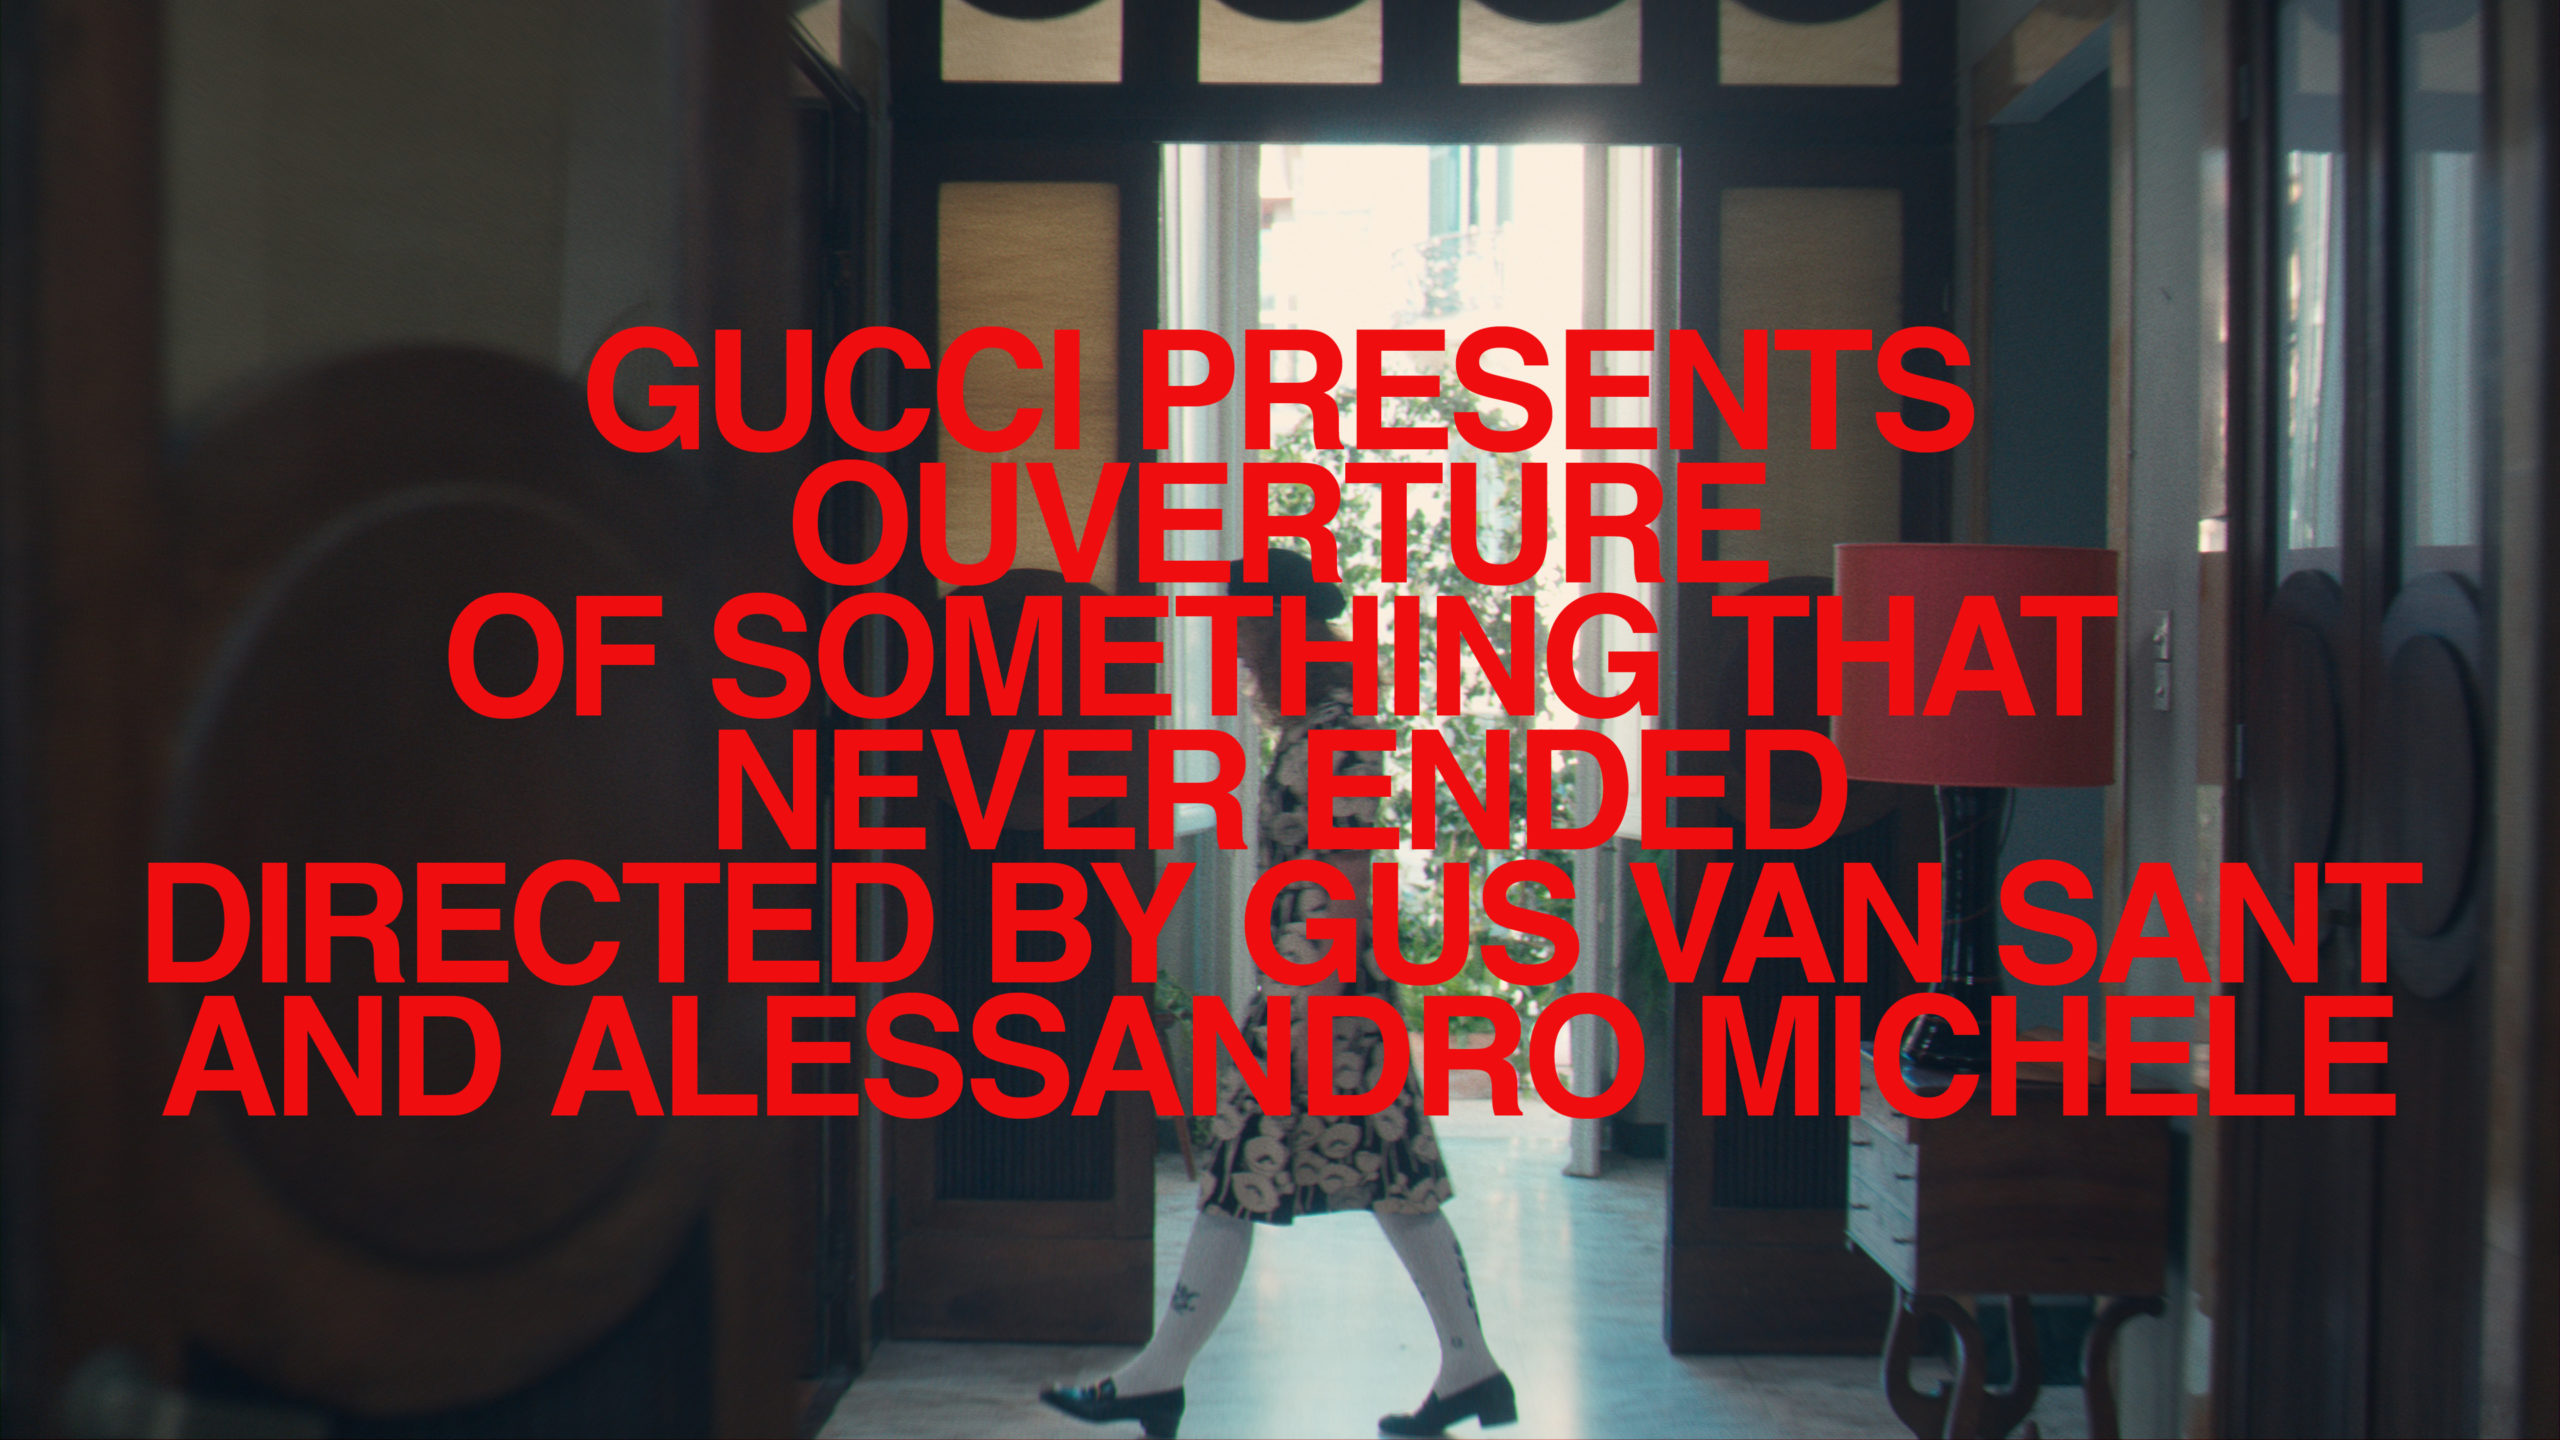 Gucci Presents New Collection in 7 Episode Mini Series